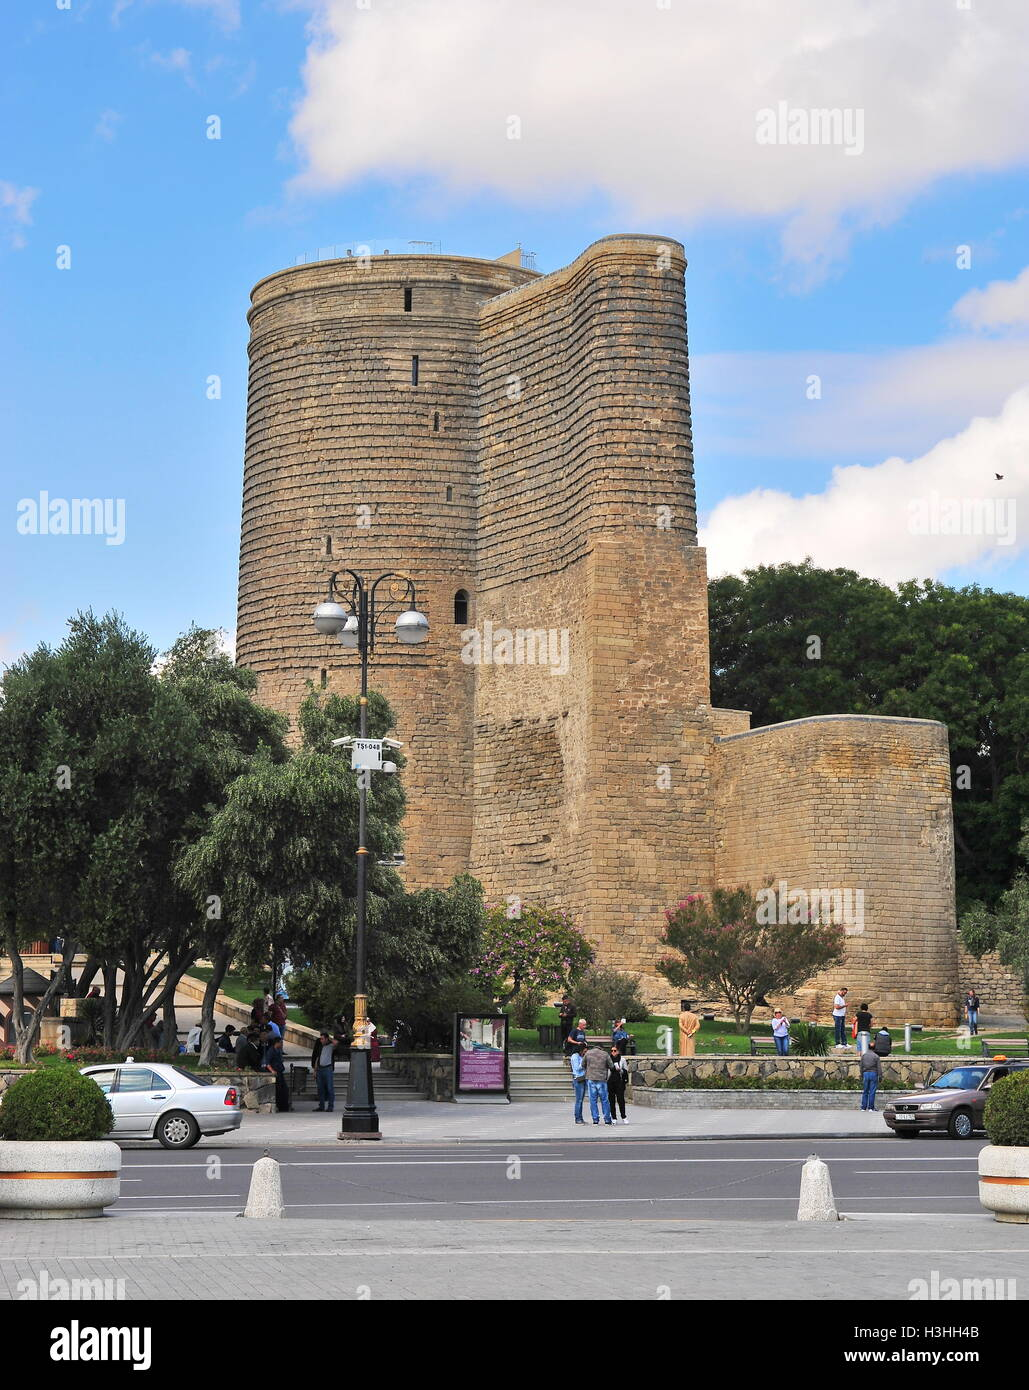 BAKU, AZERBAIJAN - SEPTEMBER 25: View of Maiden tower and old town of Baku on September 25, 2016. - Stock Image